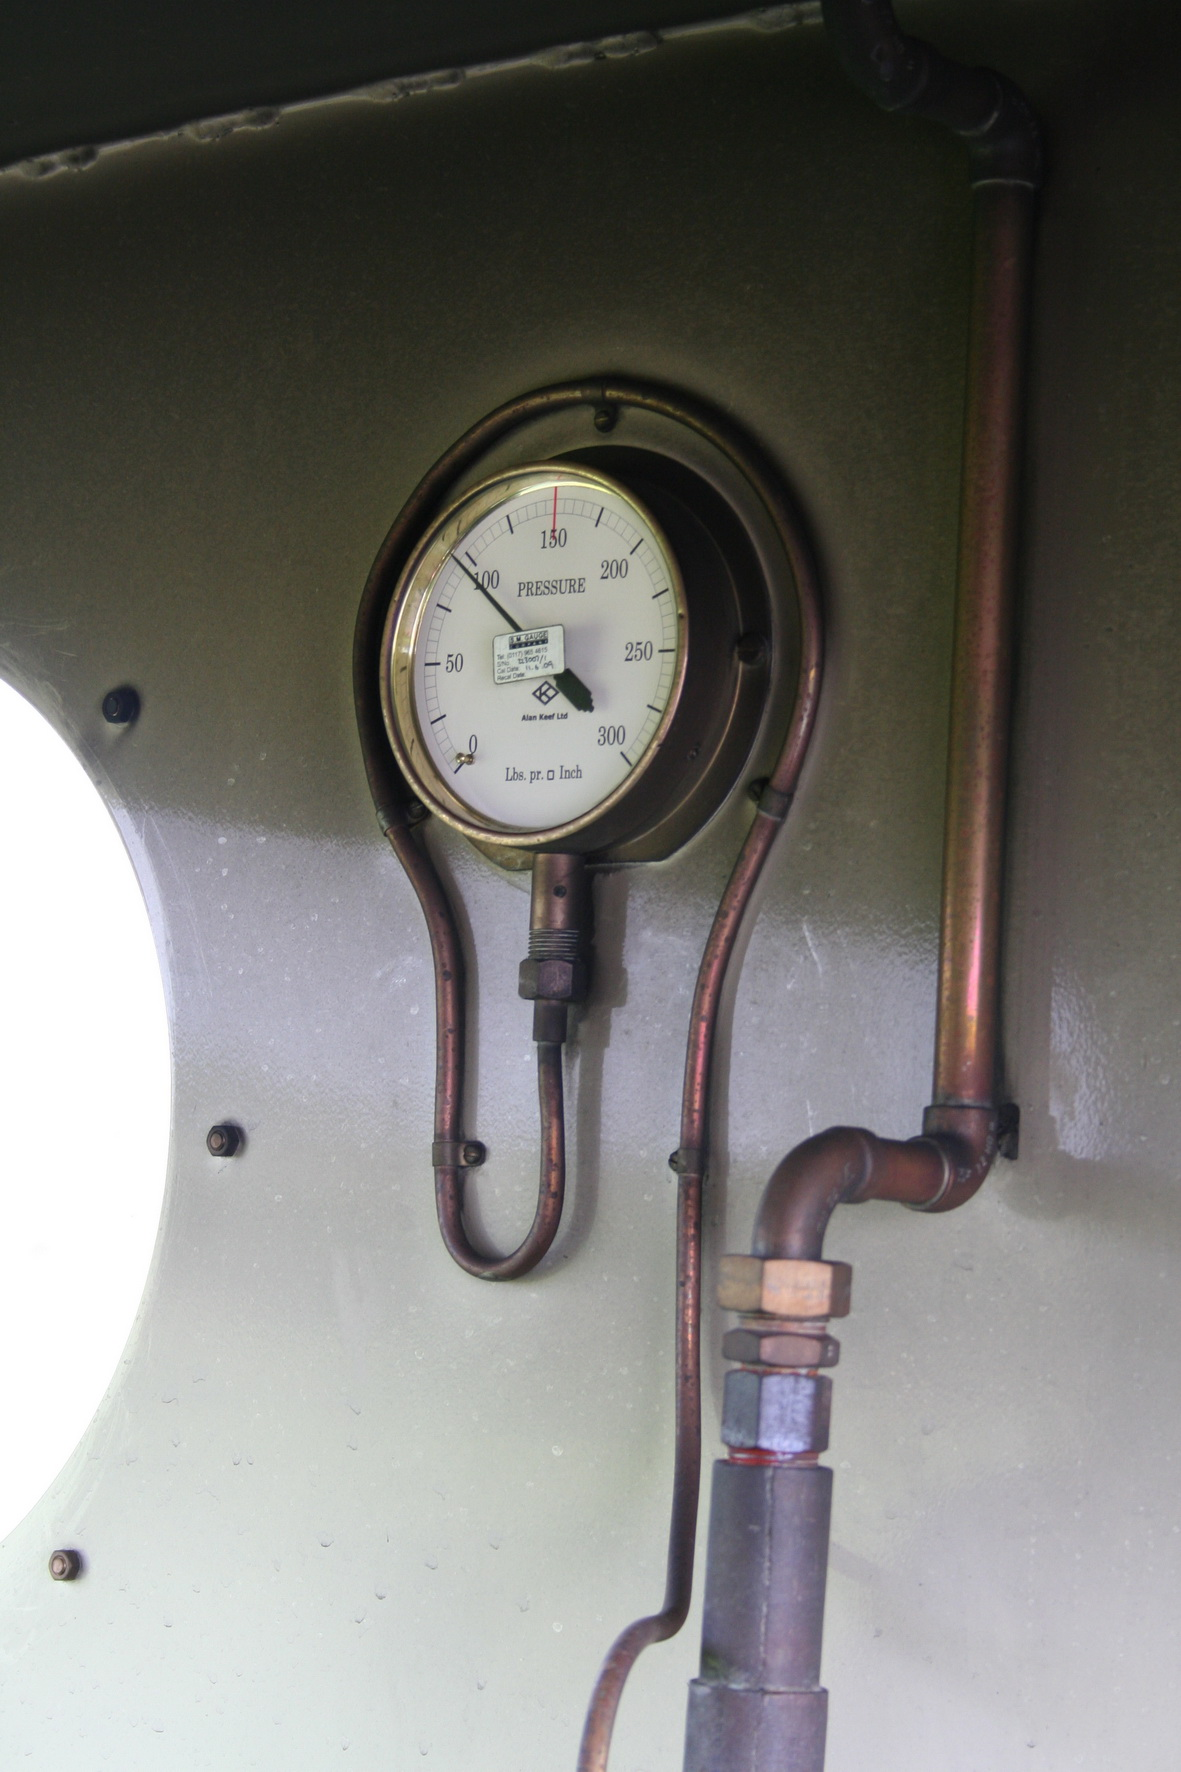 The steam pressure gauge